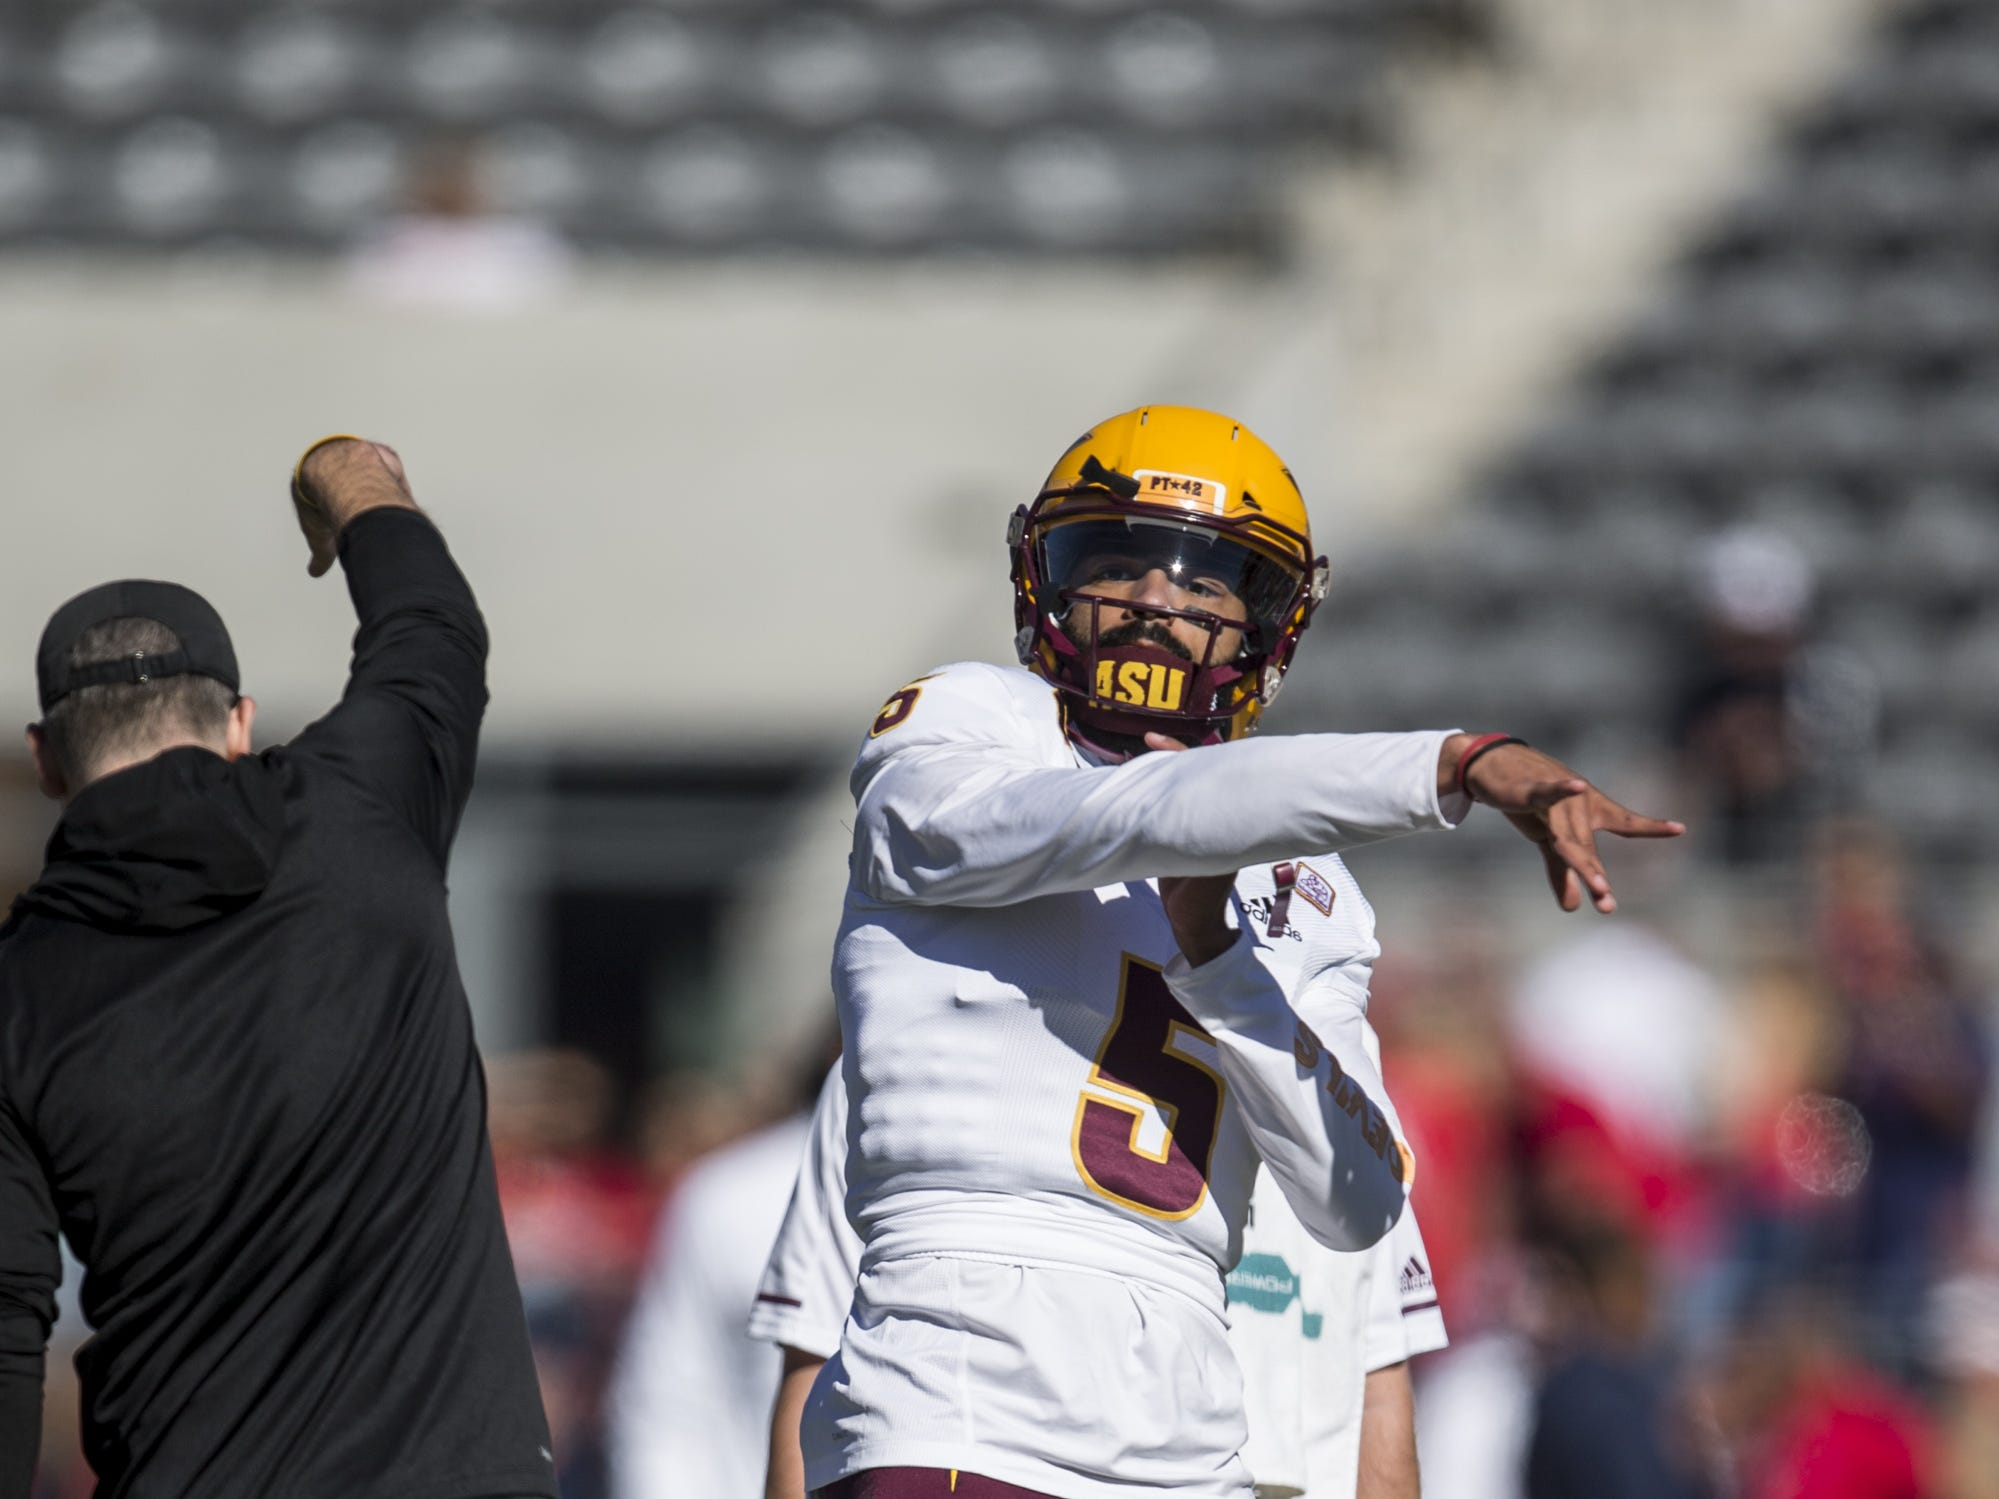 Arizona State's Manny Wilkins warms up before the Territorial Cup football game on Saturday, Nov. 24, 2018, at Arizona Stadium in Tucson, Ariz.